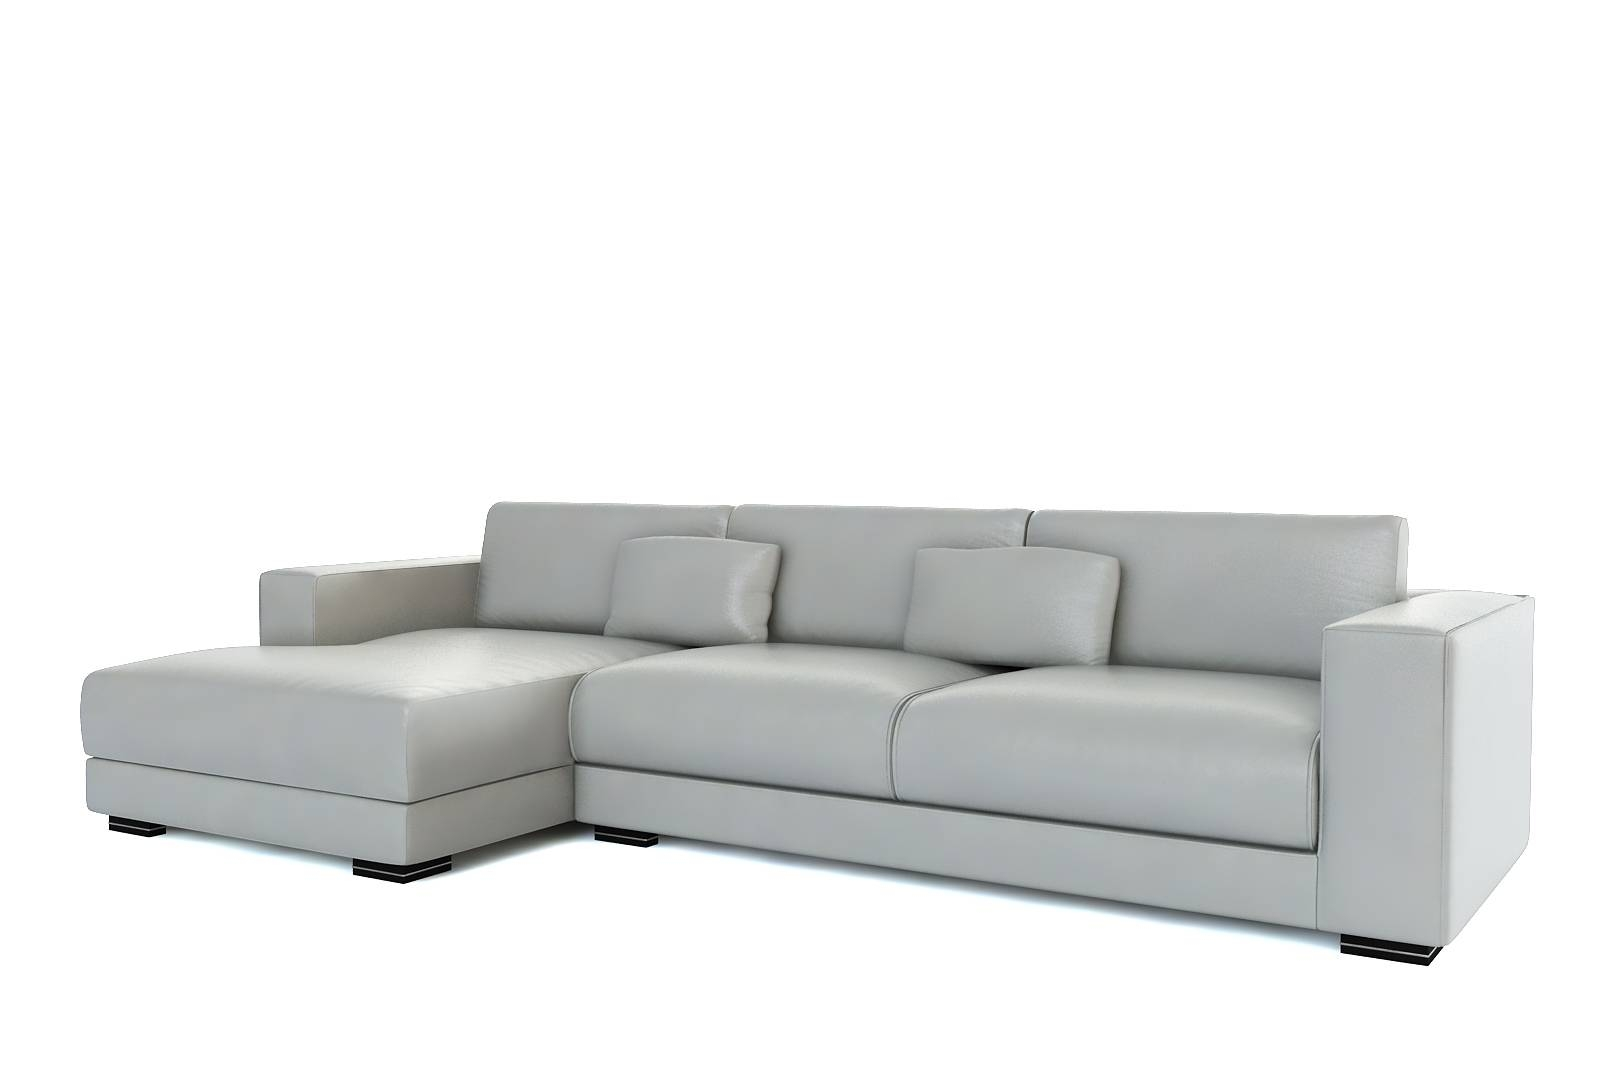 Sofas Center : Light Grey Aspen Leather Sofa Modern Gray Sectional intended for Aspen Leather Sofas (Image 24 of 30)